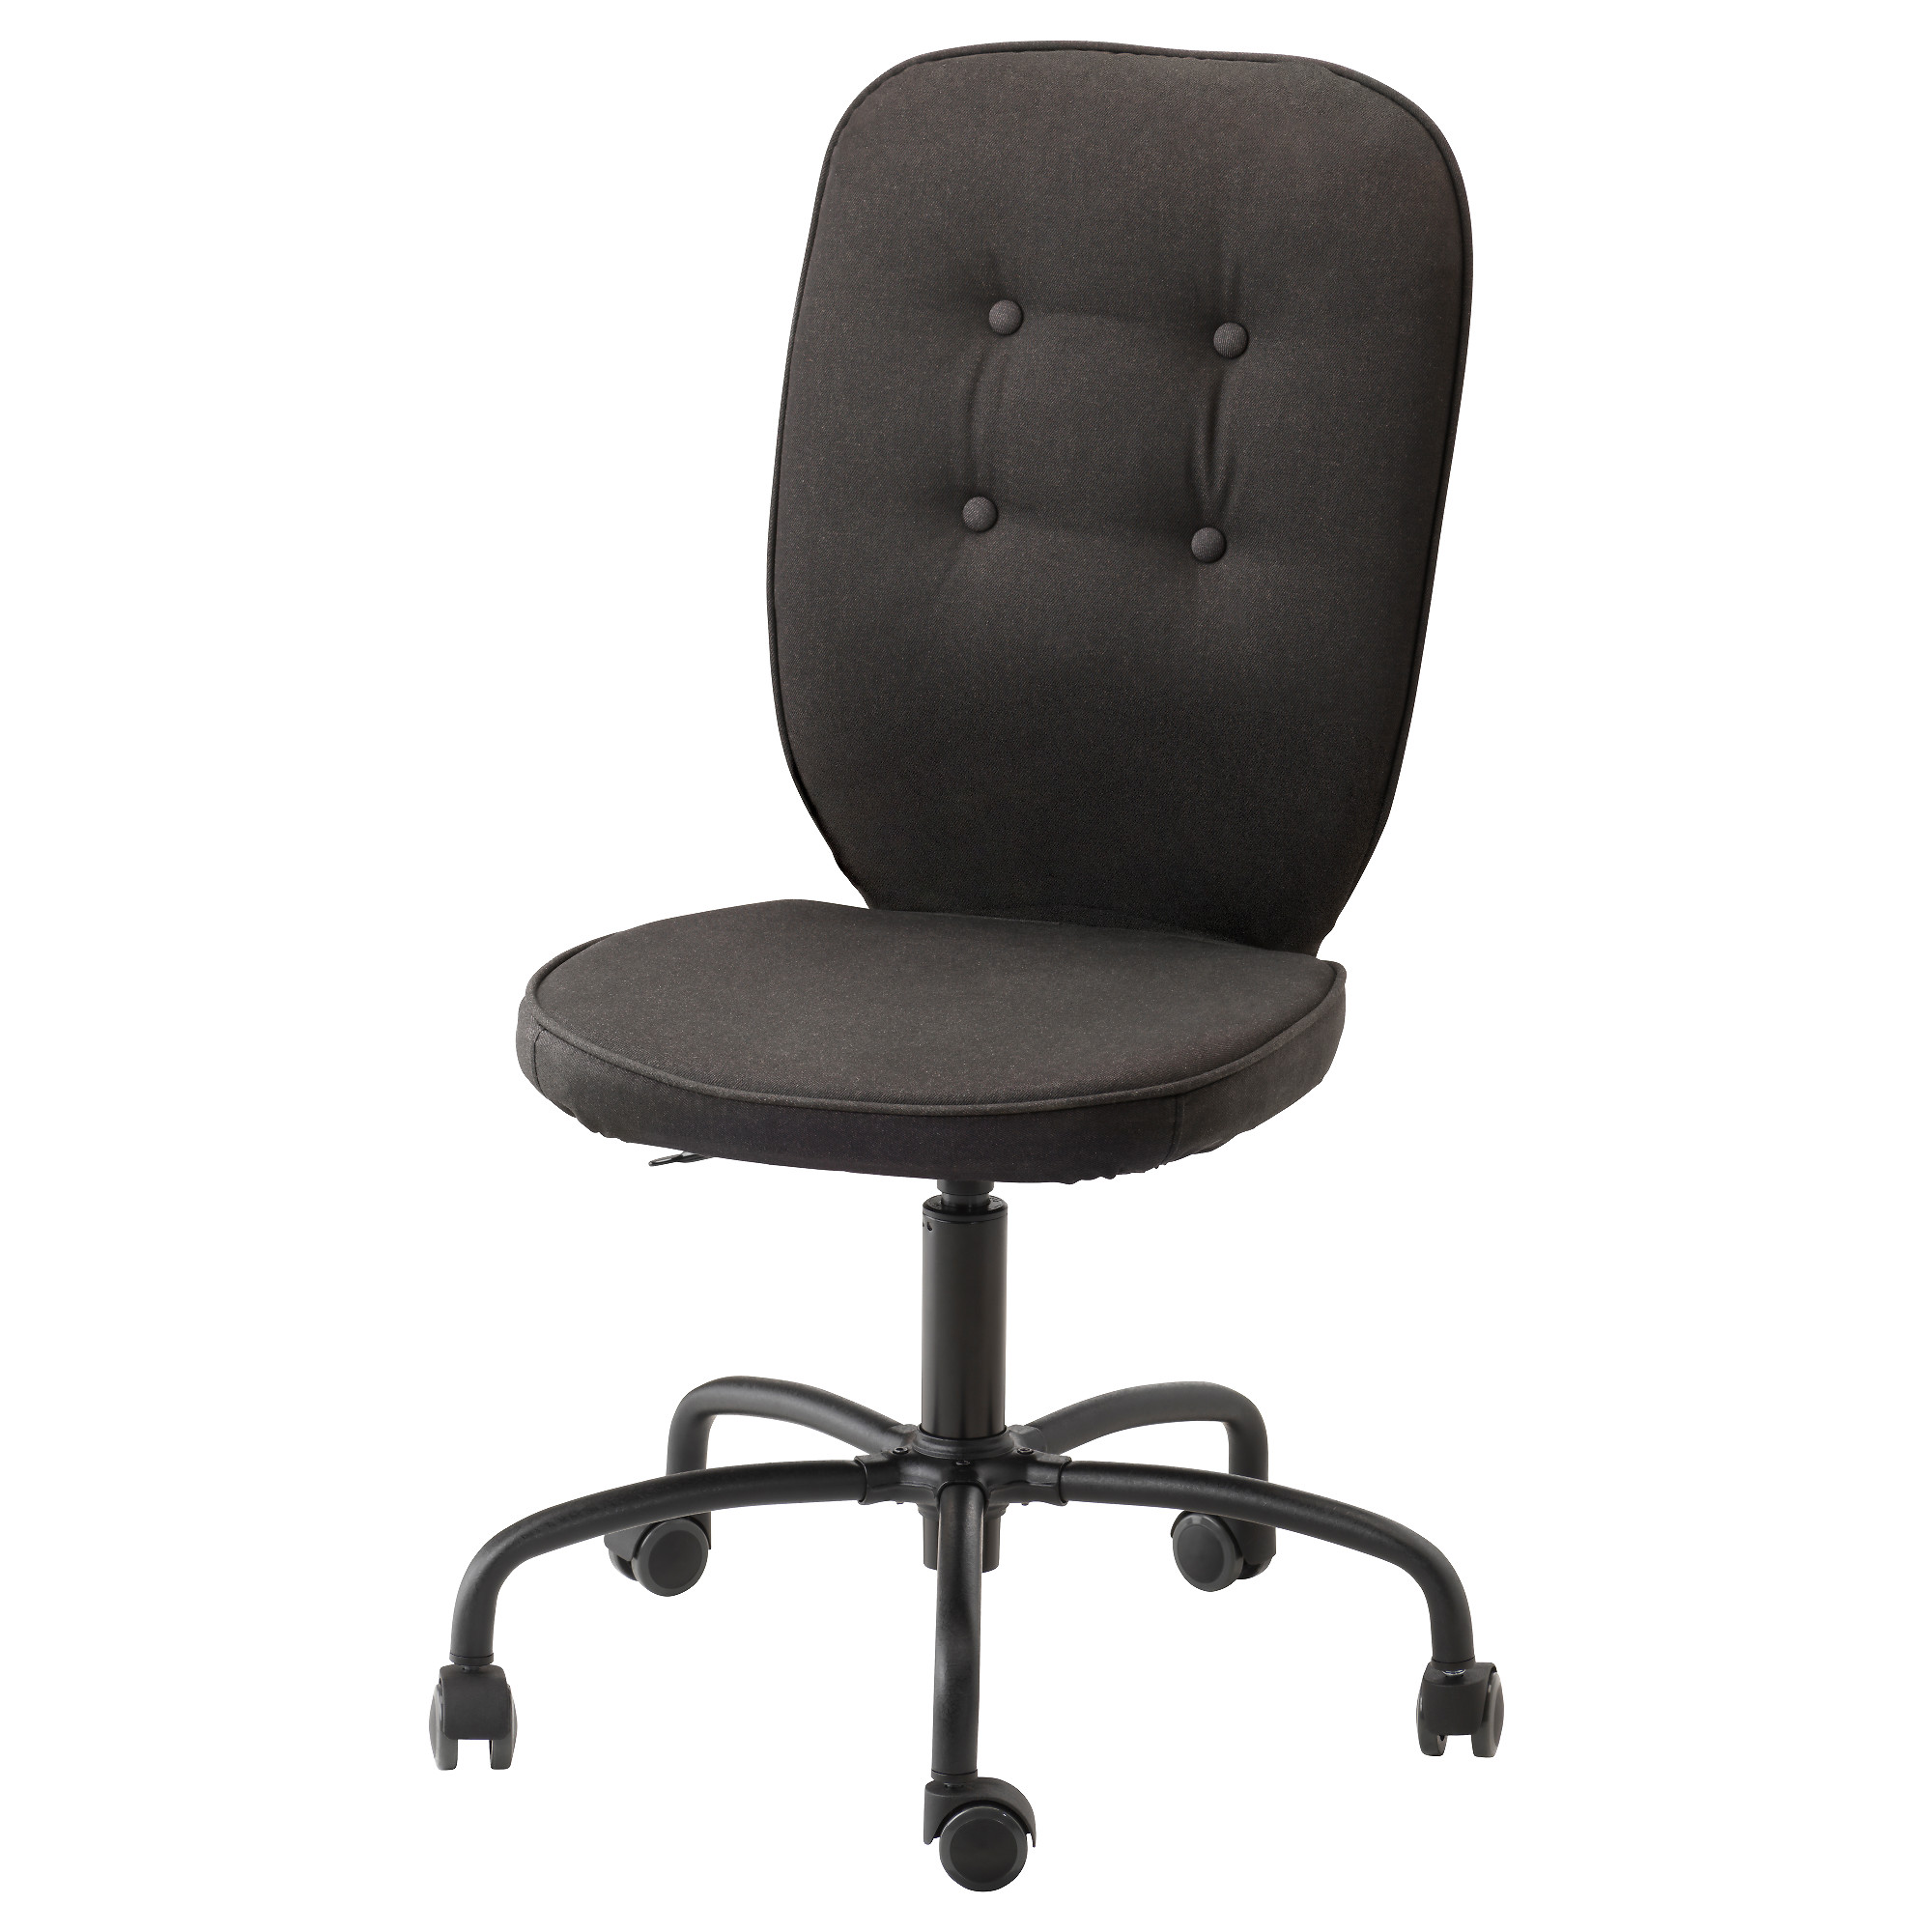 White Leather Office Chair Ikea LILLHJDEN Swivel Chair Black Idemo Tested For 242 Lb 8 Oz Width White Leather Office Ikea E